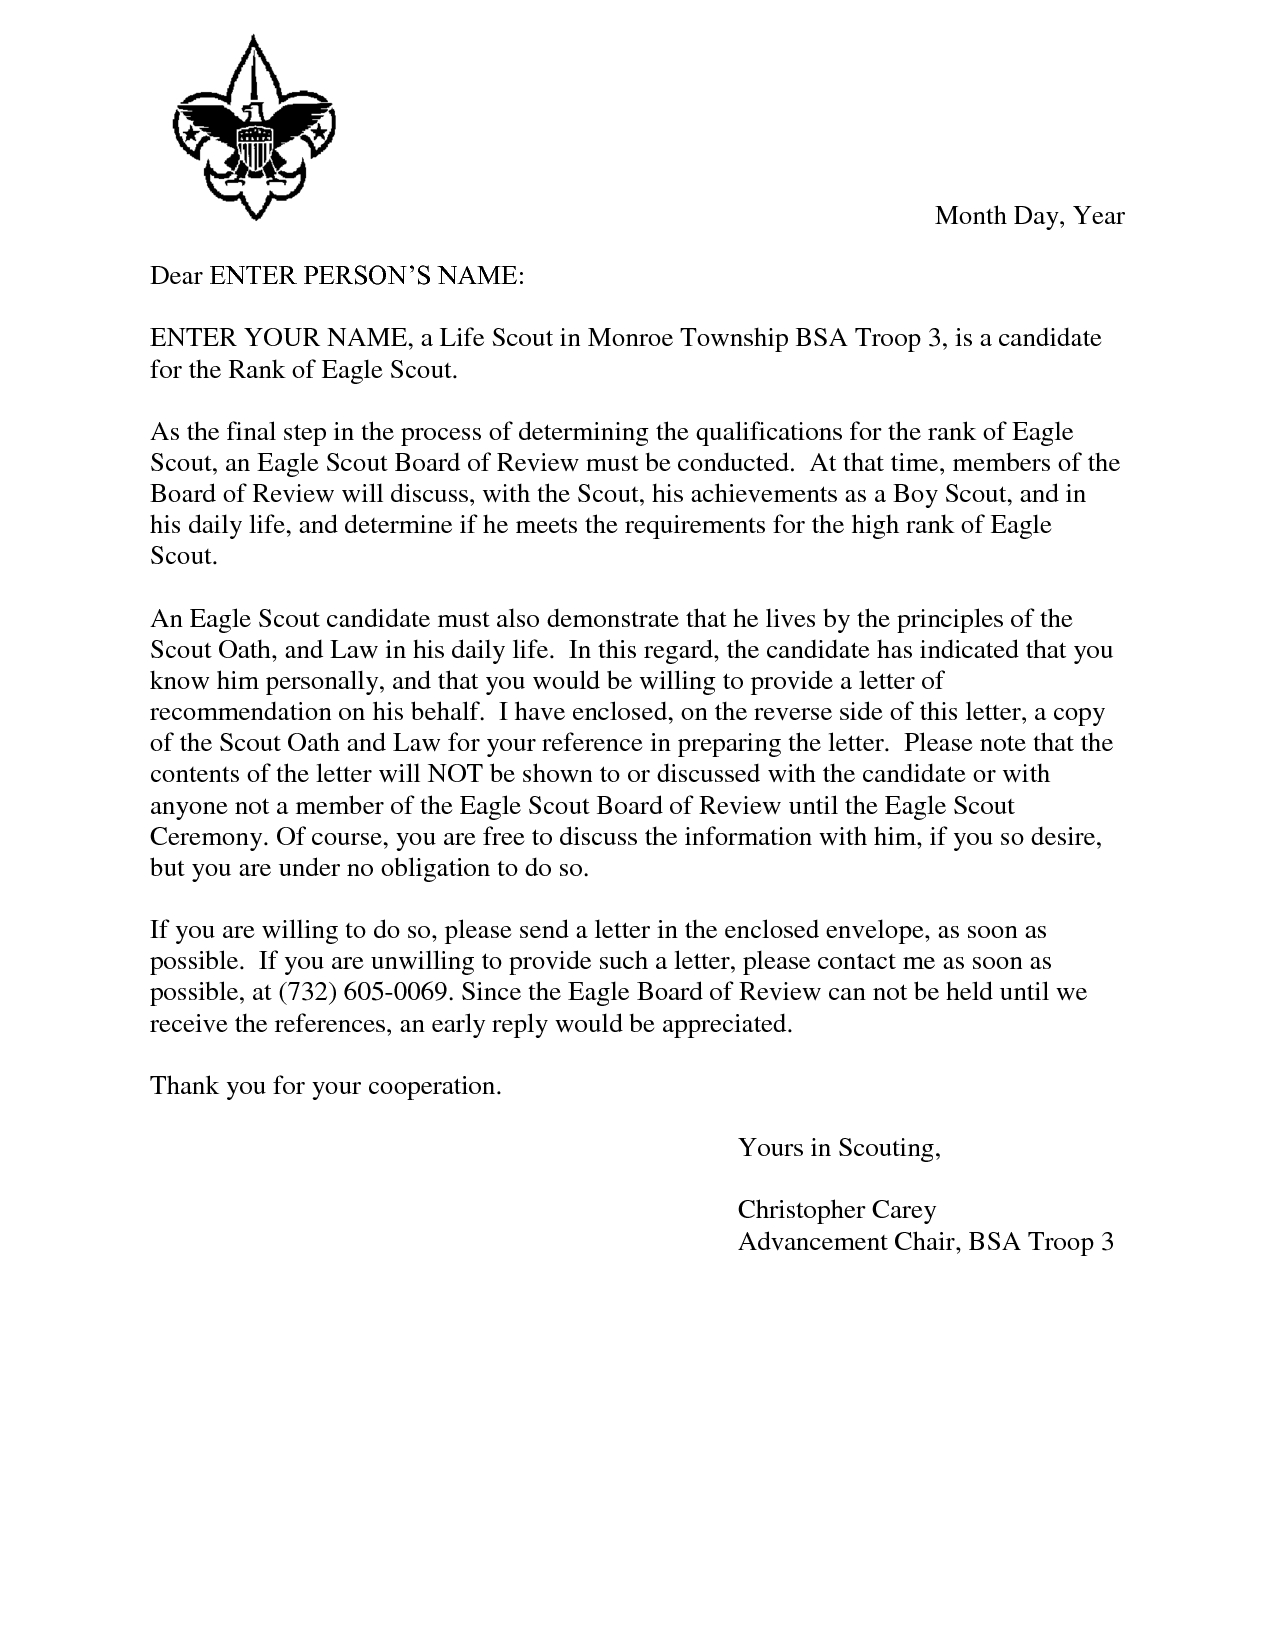 Boy Scout Donation Letter Template - Eagle Scout Reference Request Sample Letter Doc 7 by Hfr990q